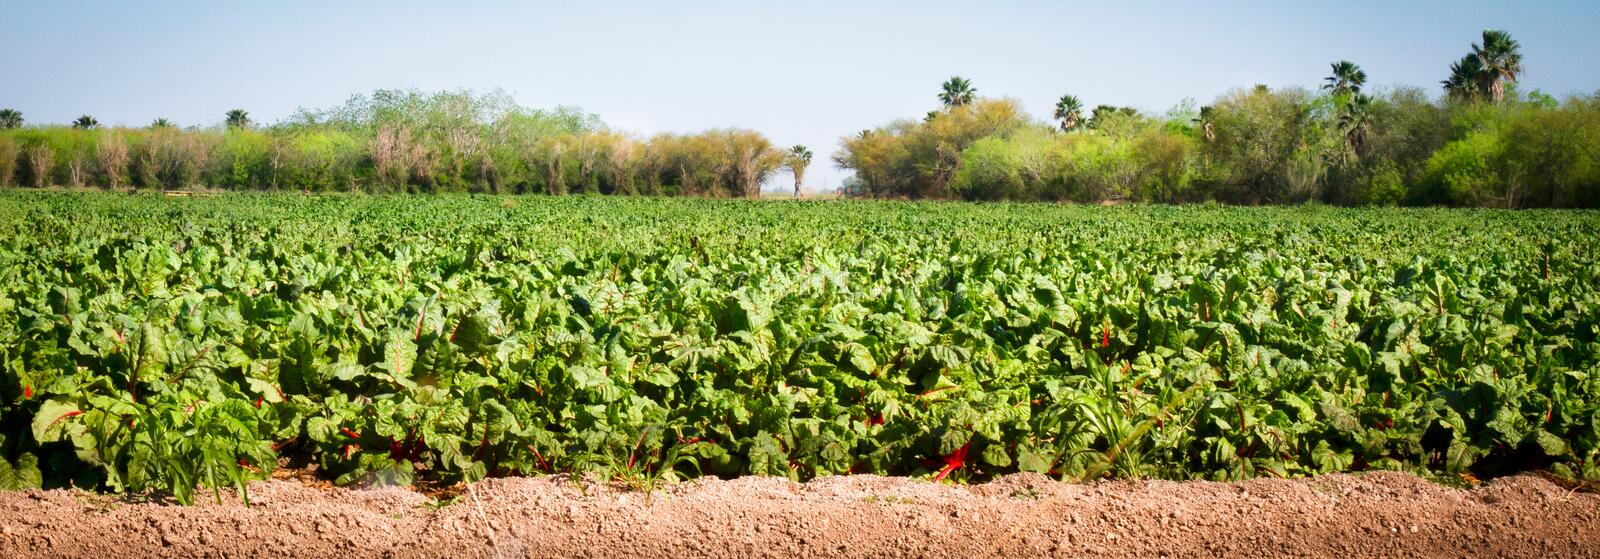 Bountiful crop on farm growing. Vibrant green food crop growing on an agricultural farm in texas, united states stock photography